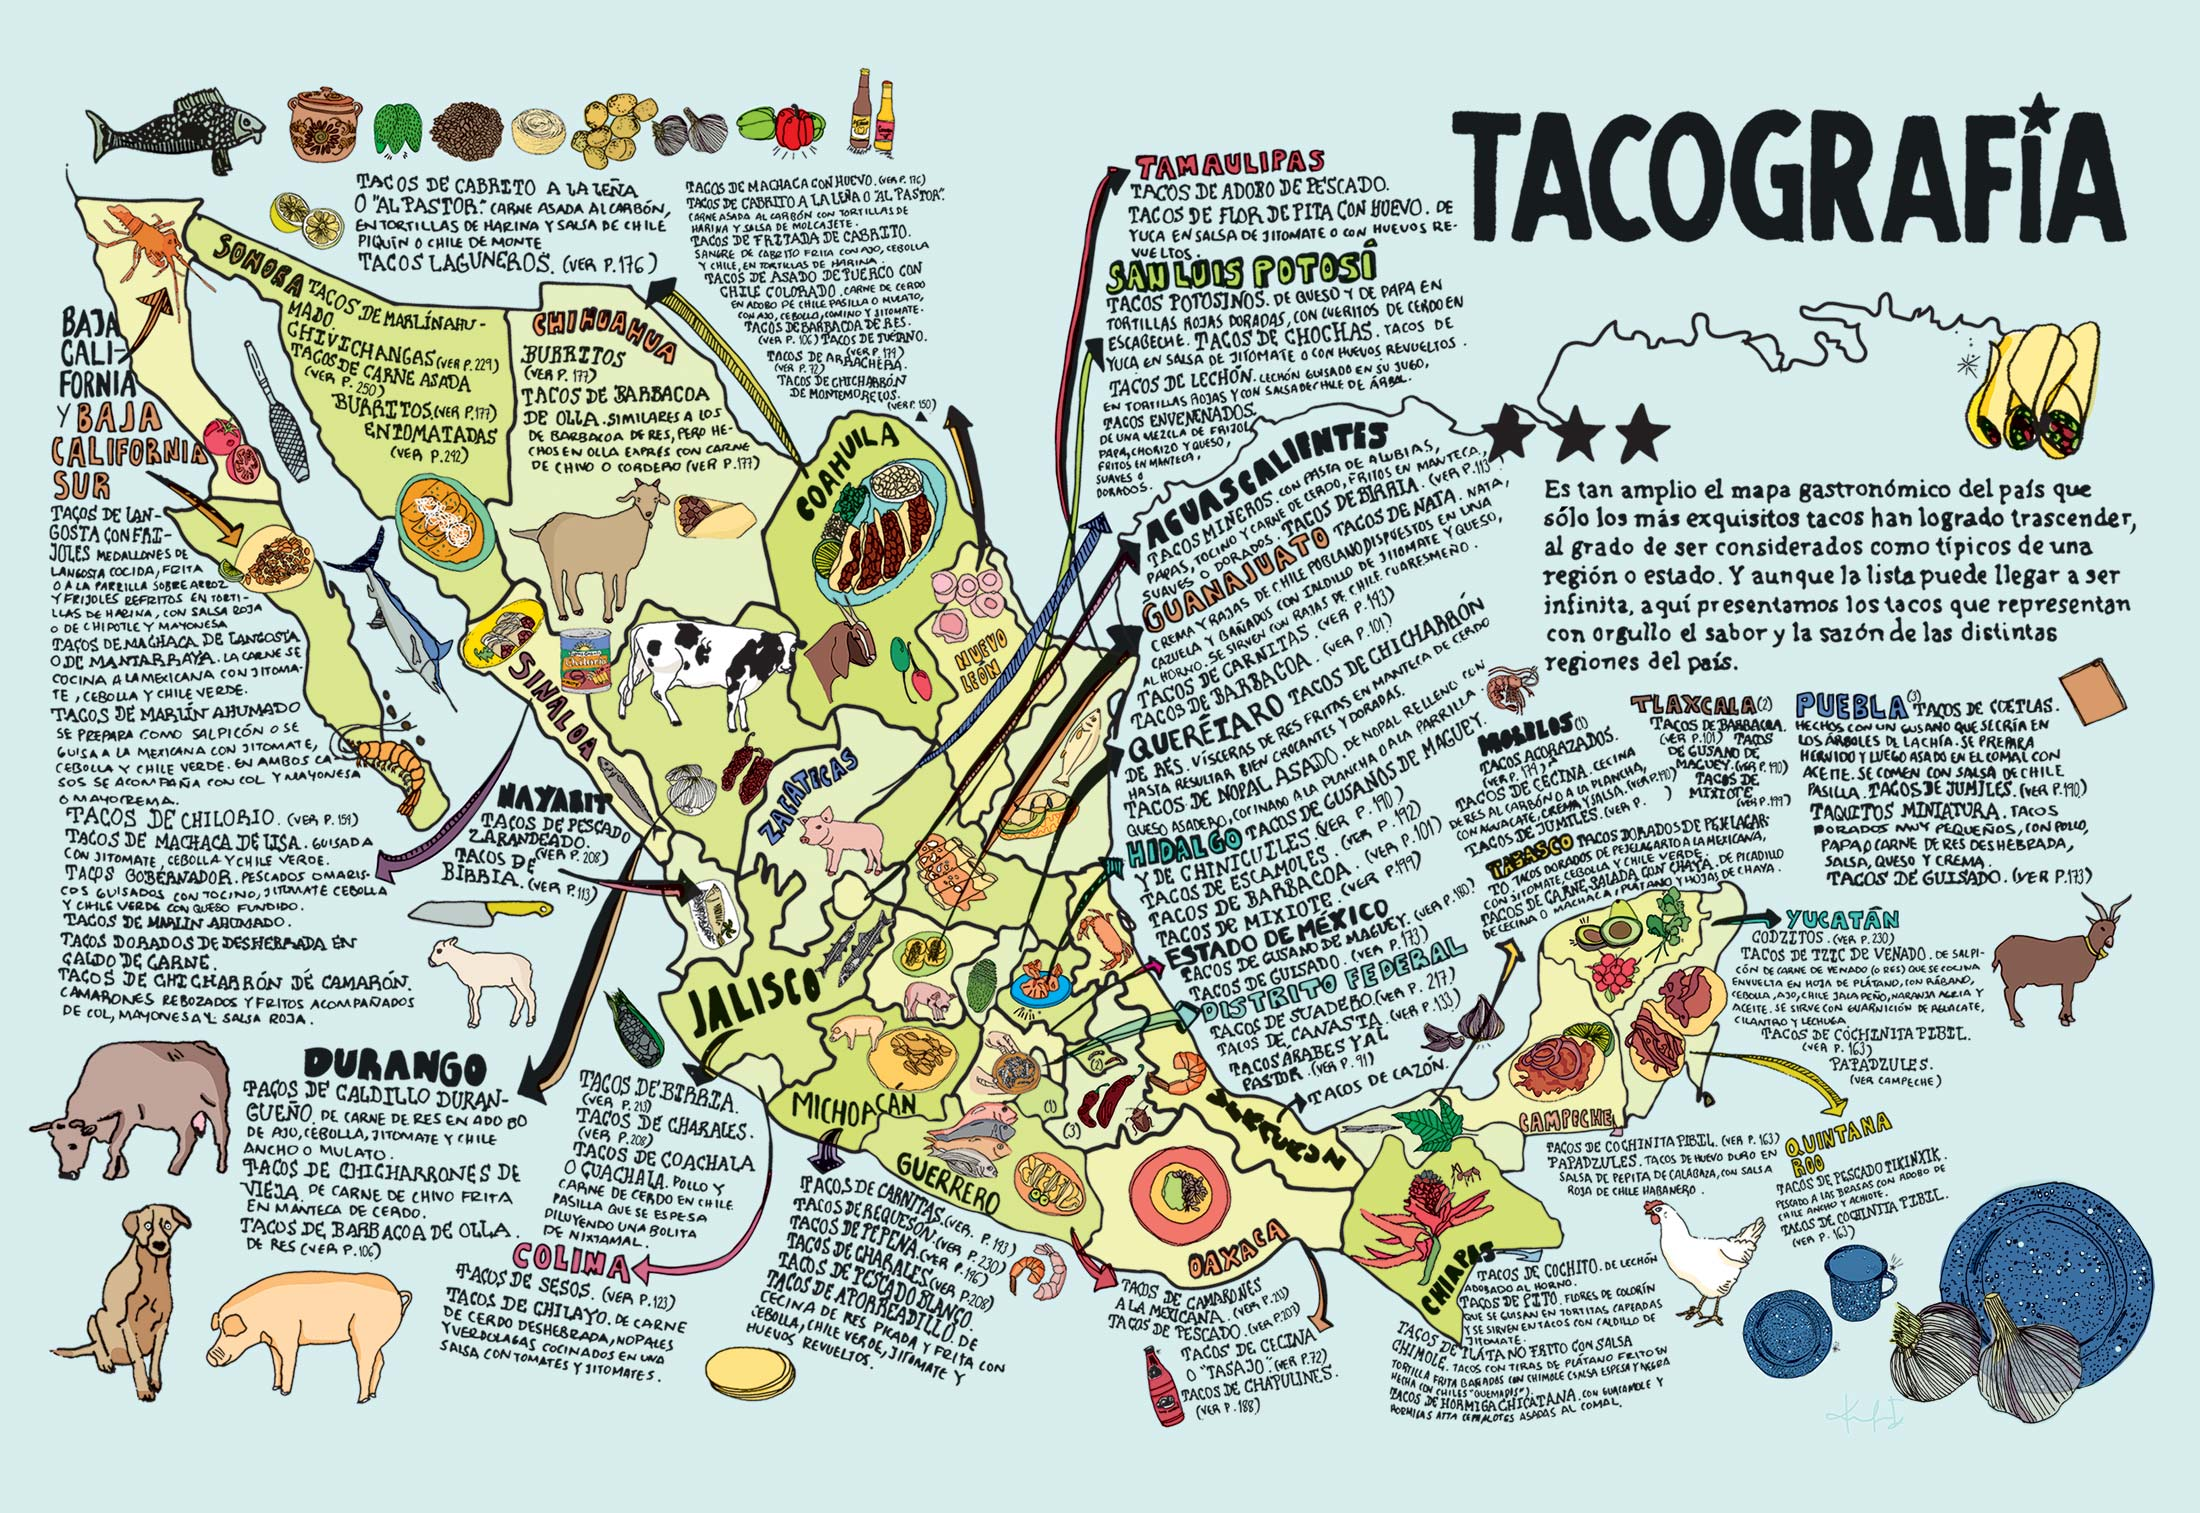 Regional varieties of Mexican tacos